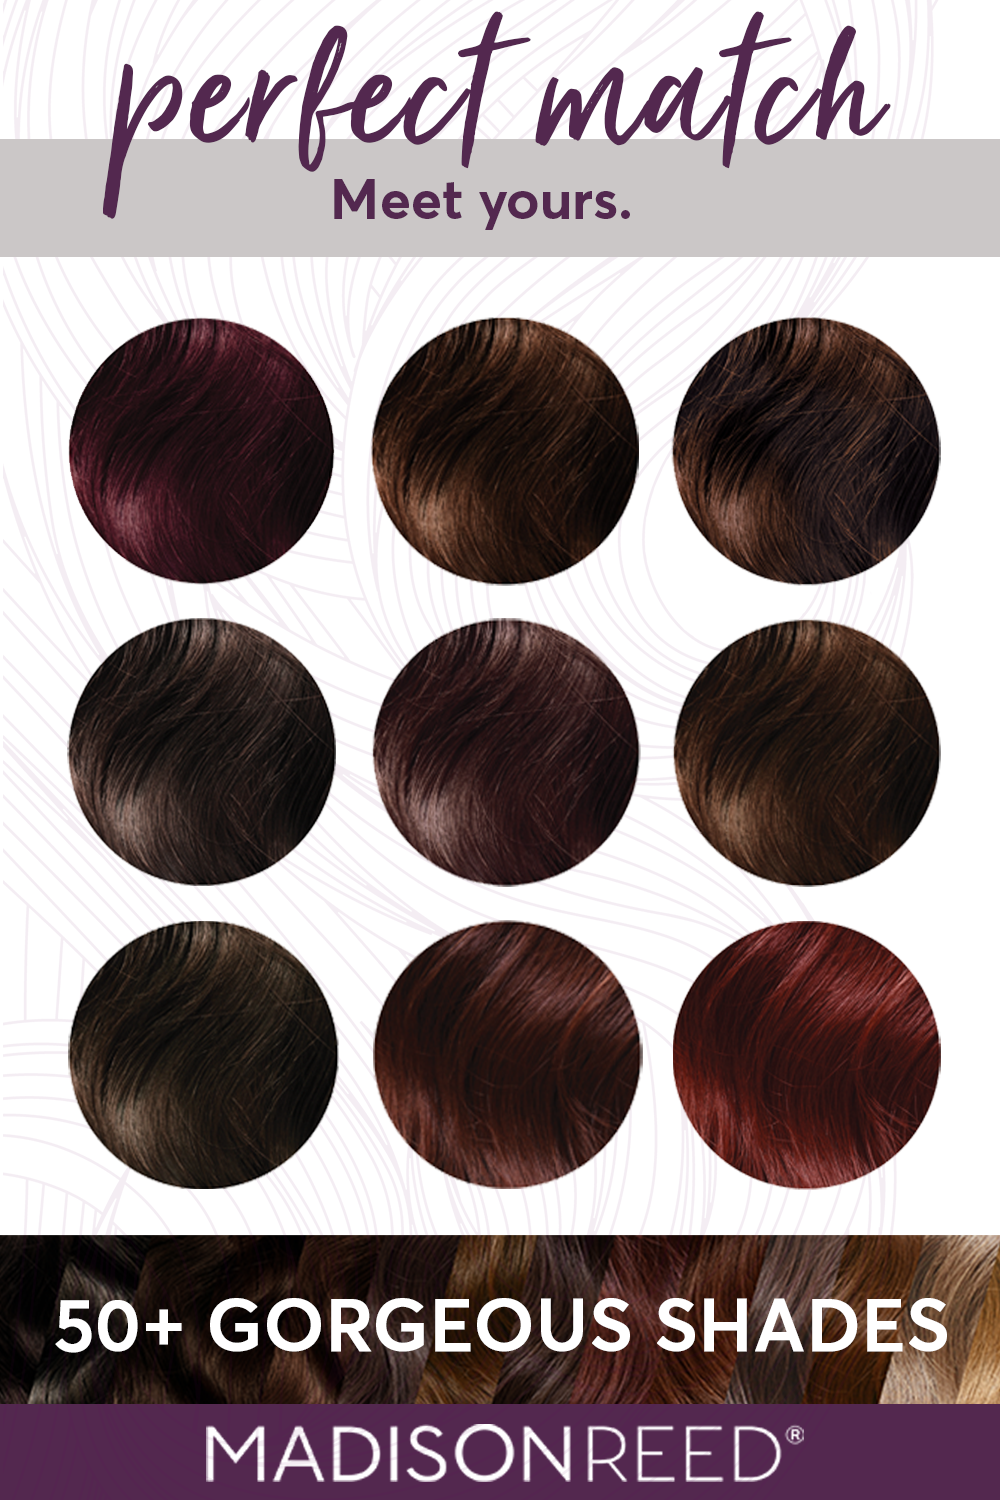 Take The Color Quiz To Find Your Perfect Hair Color Shade Aubergine Purple Hair Hot Chocolate Br Hair Color For Black Hair Hair Color Quiz At Home Hair Color